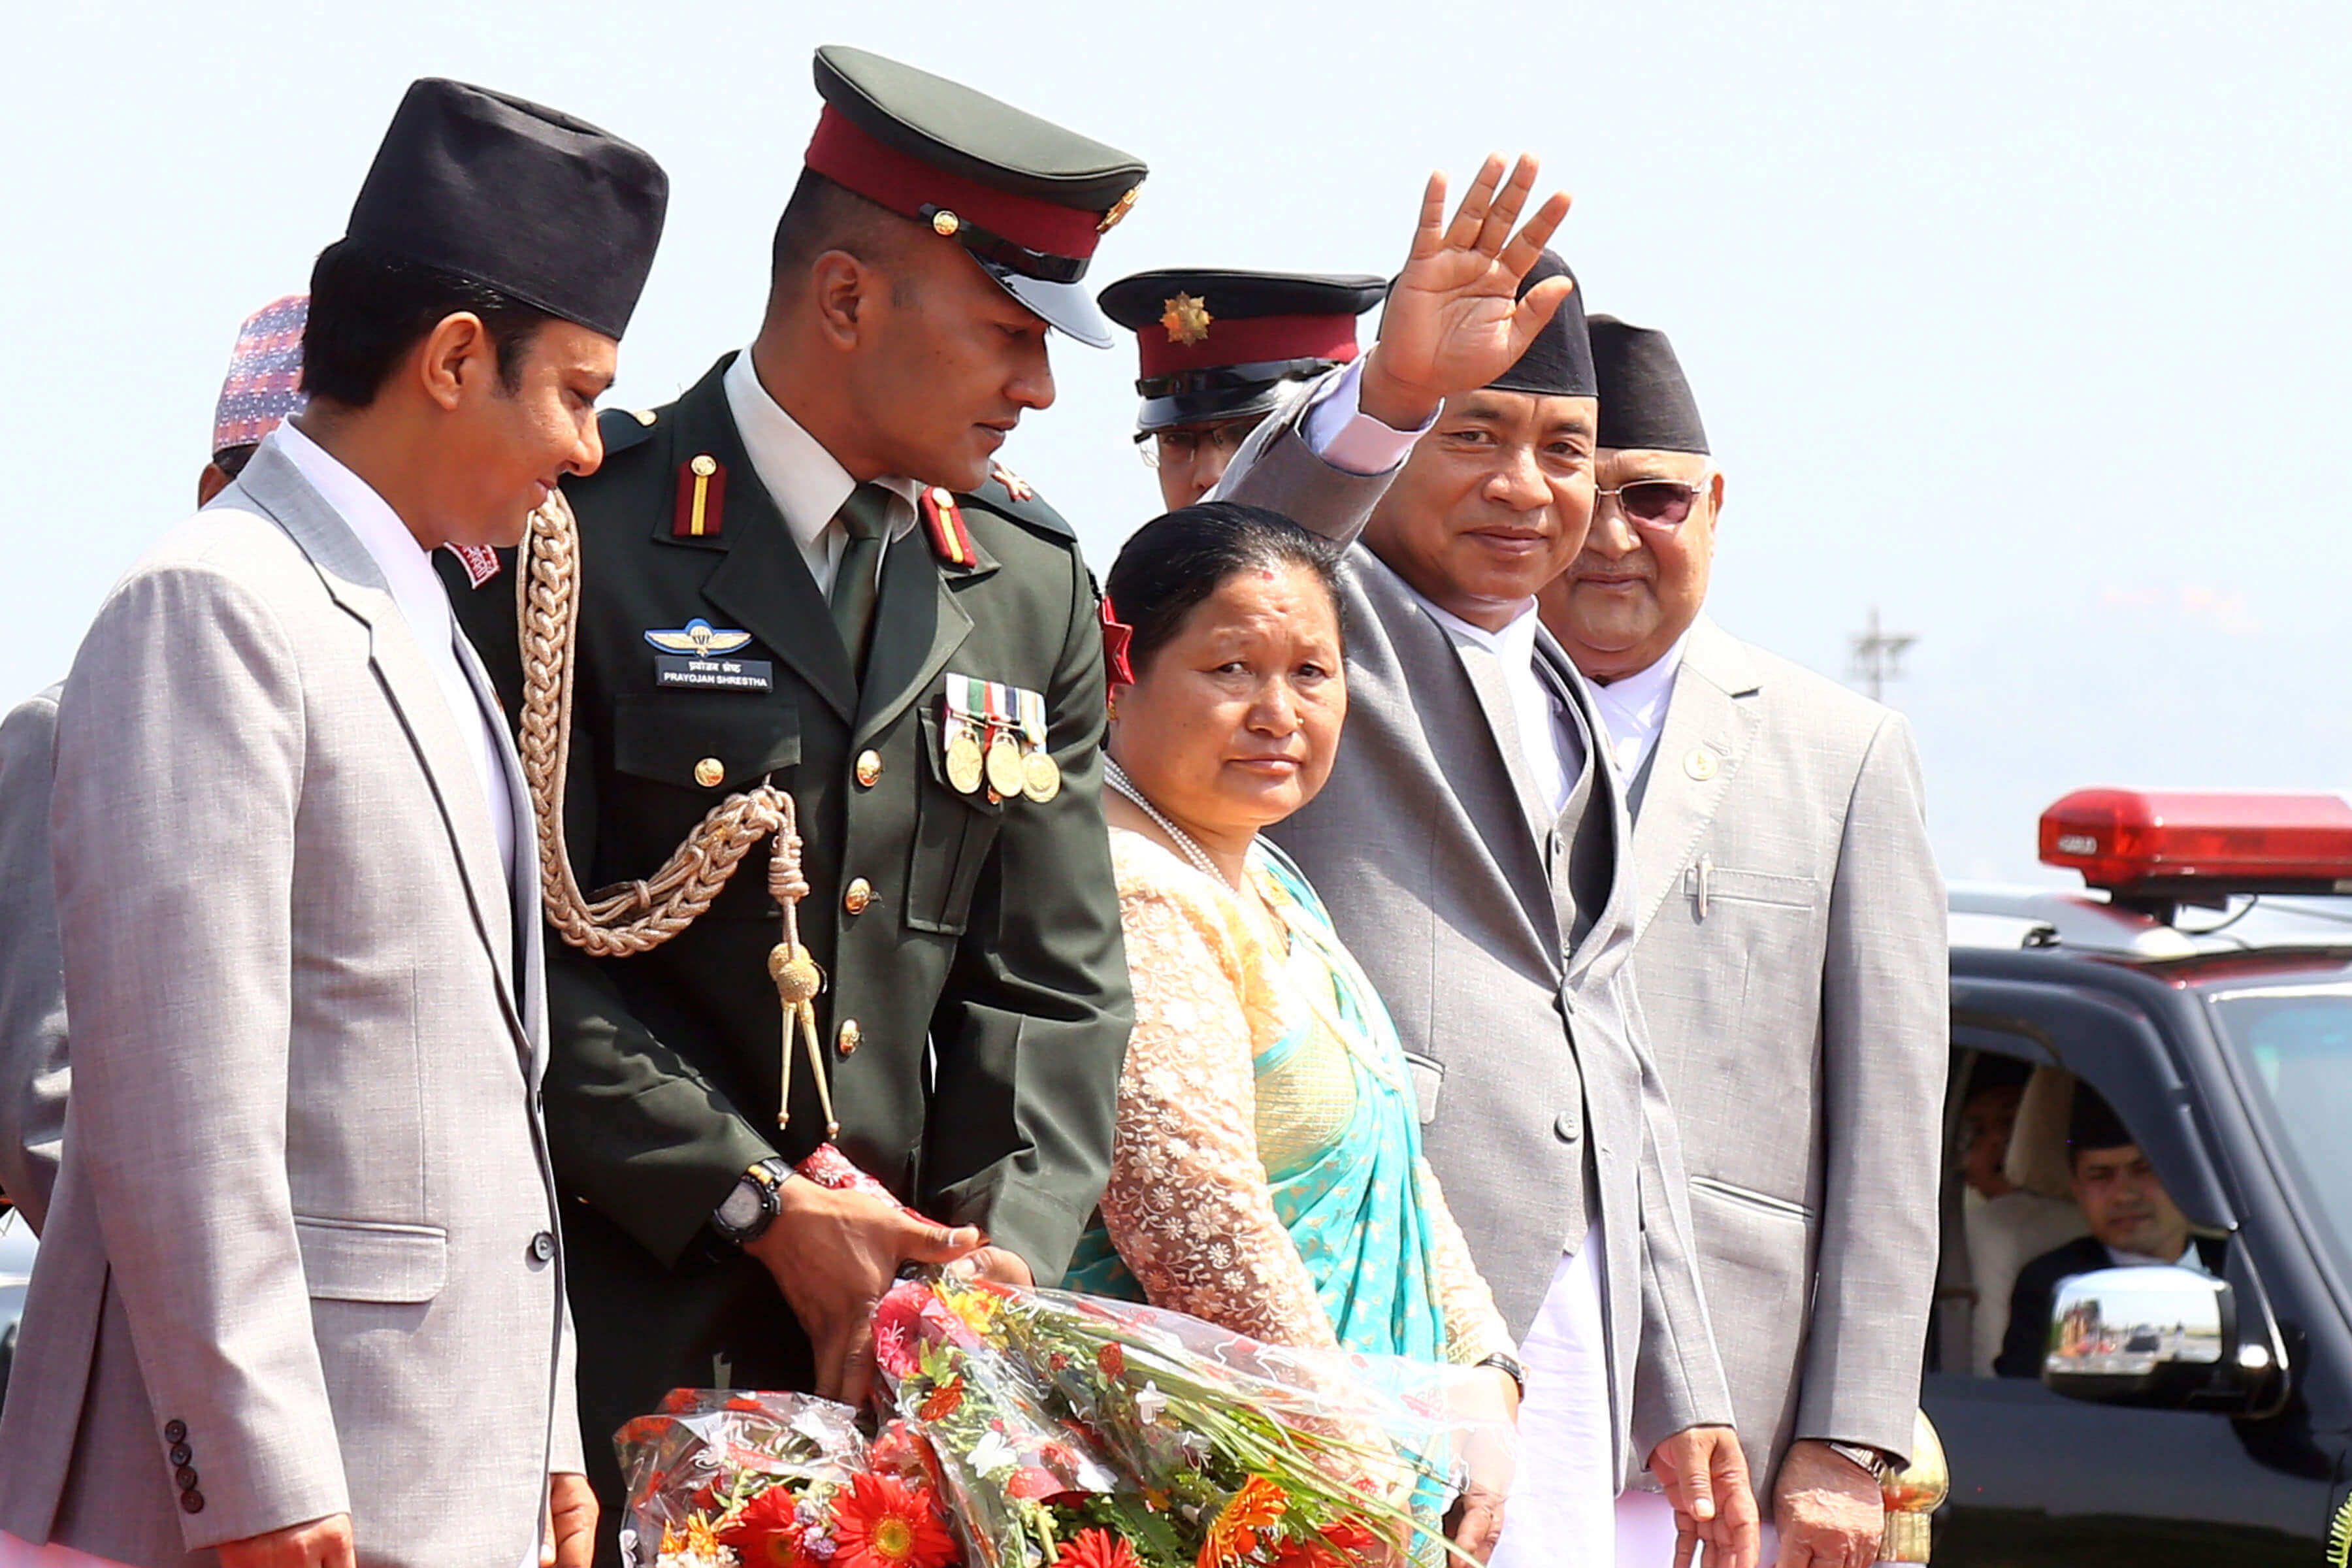 Vice President Nanda Kishor Pun leaves for Austria on Sunday on a week-long visit at the invitation of the Austrian President Alexander Van der Bellen. Pun will attend the R-20 World Summit on Climate Change to be organised in Vienna on May 28.